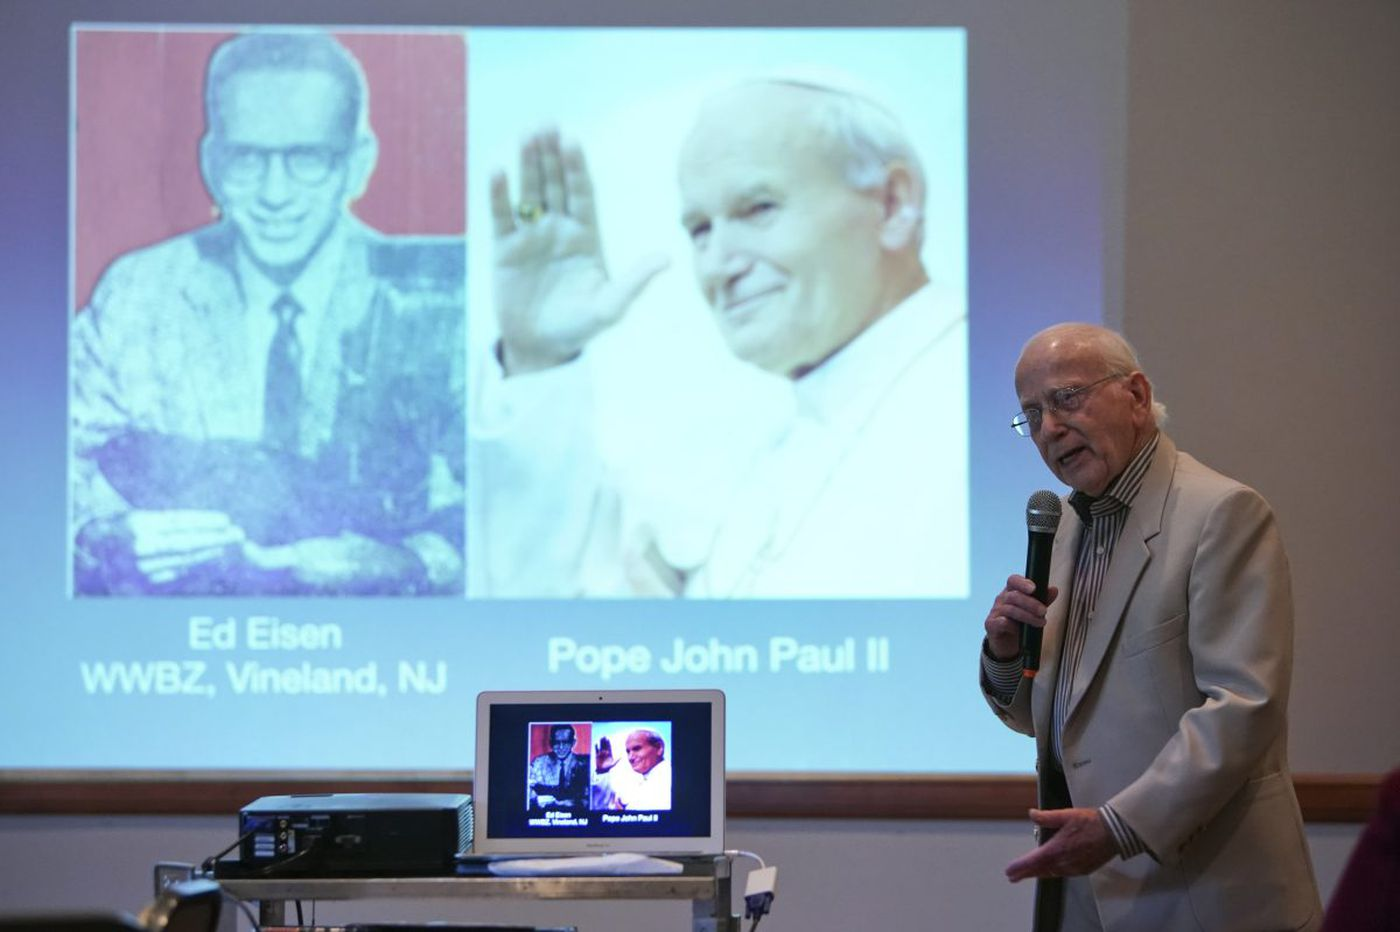 Octogenarian Ed Eisen covered presidents, popes and now tells his tales for a living